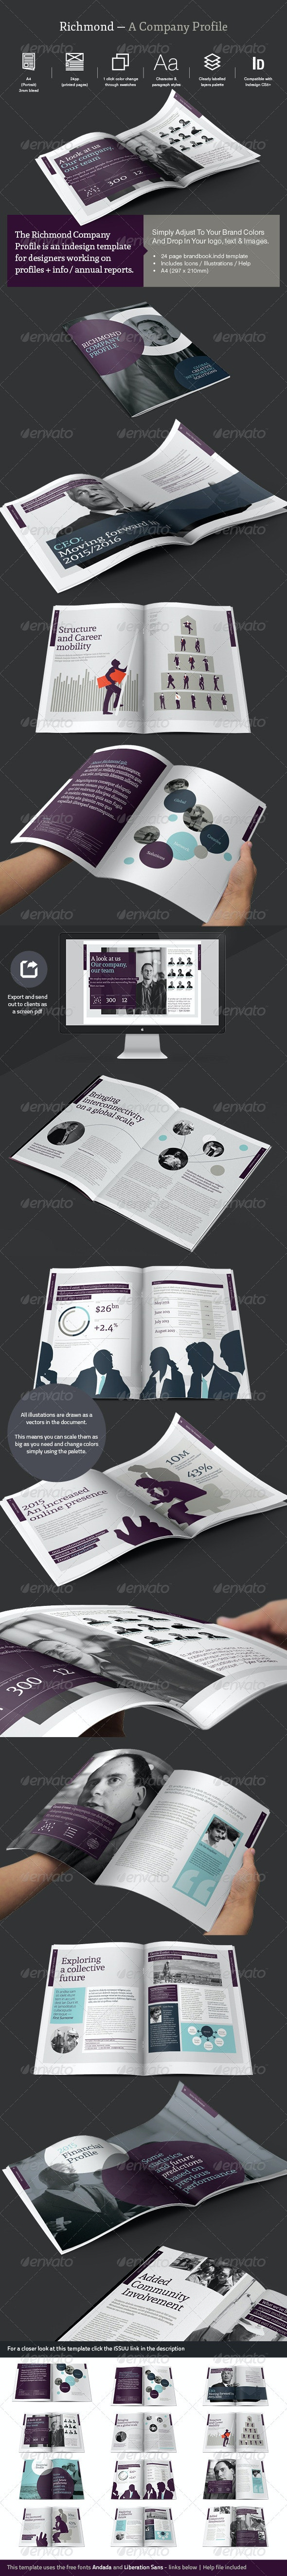 Company Profile / Review - Informational Brochures